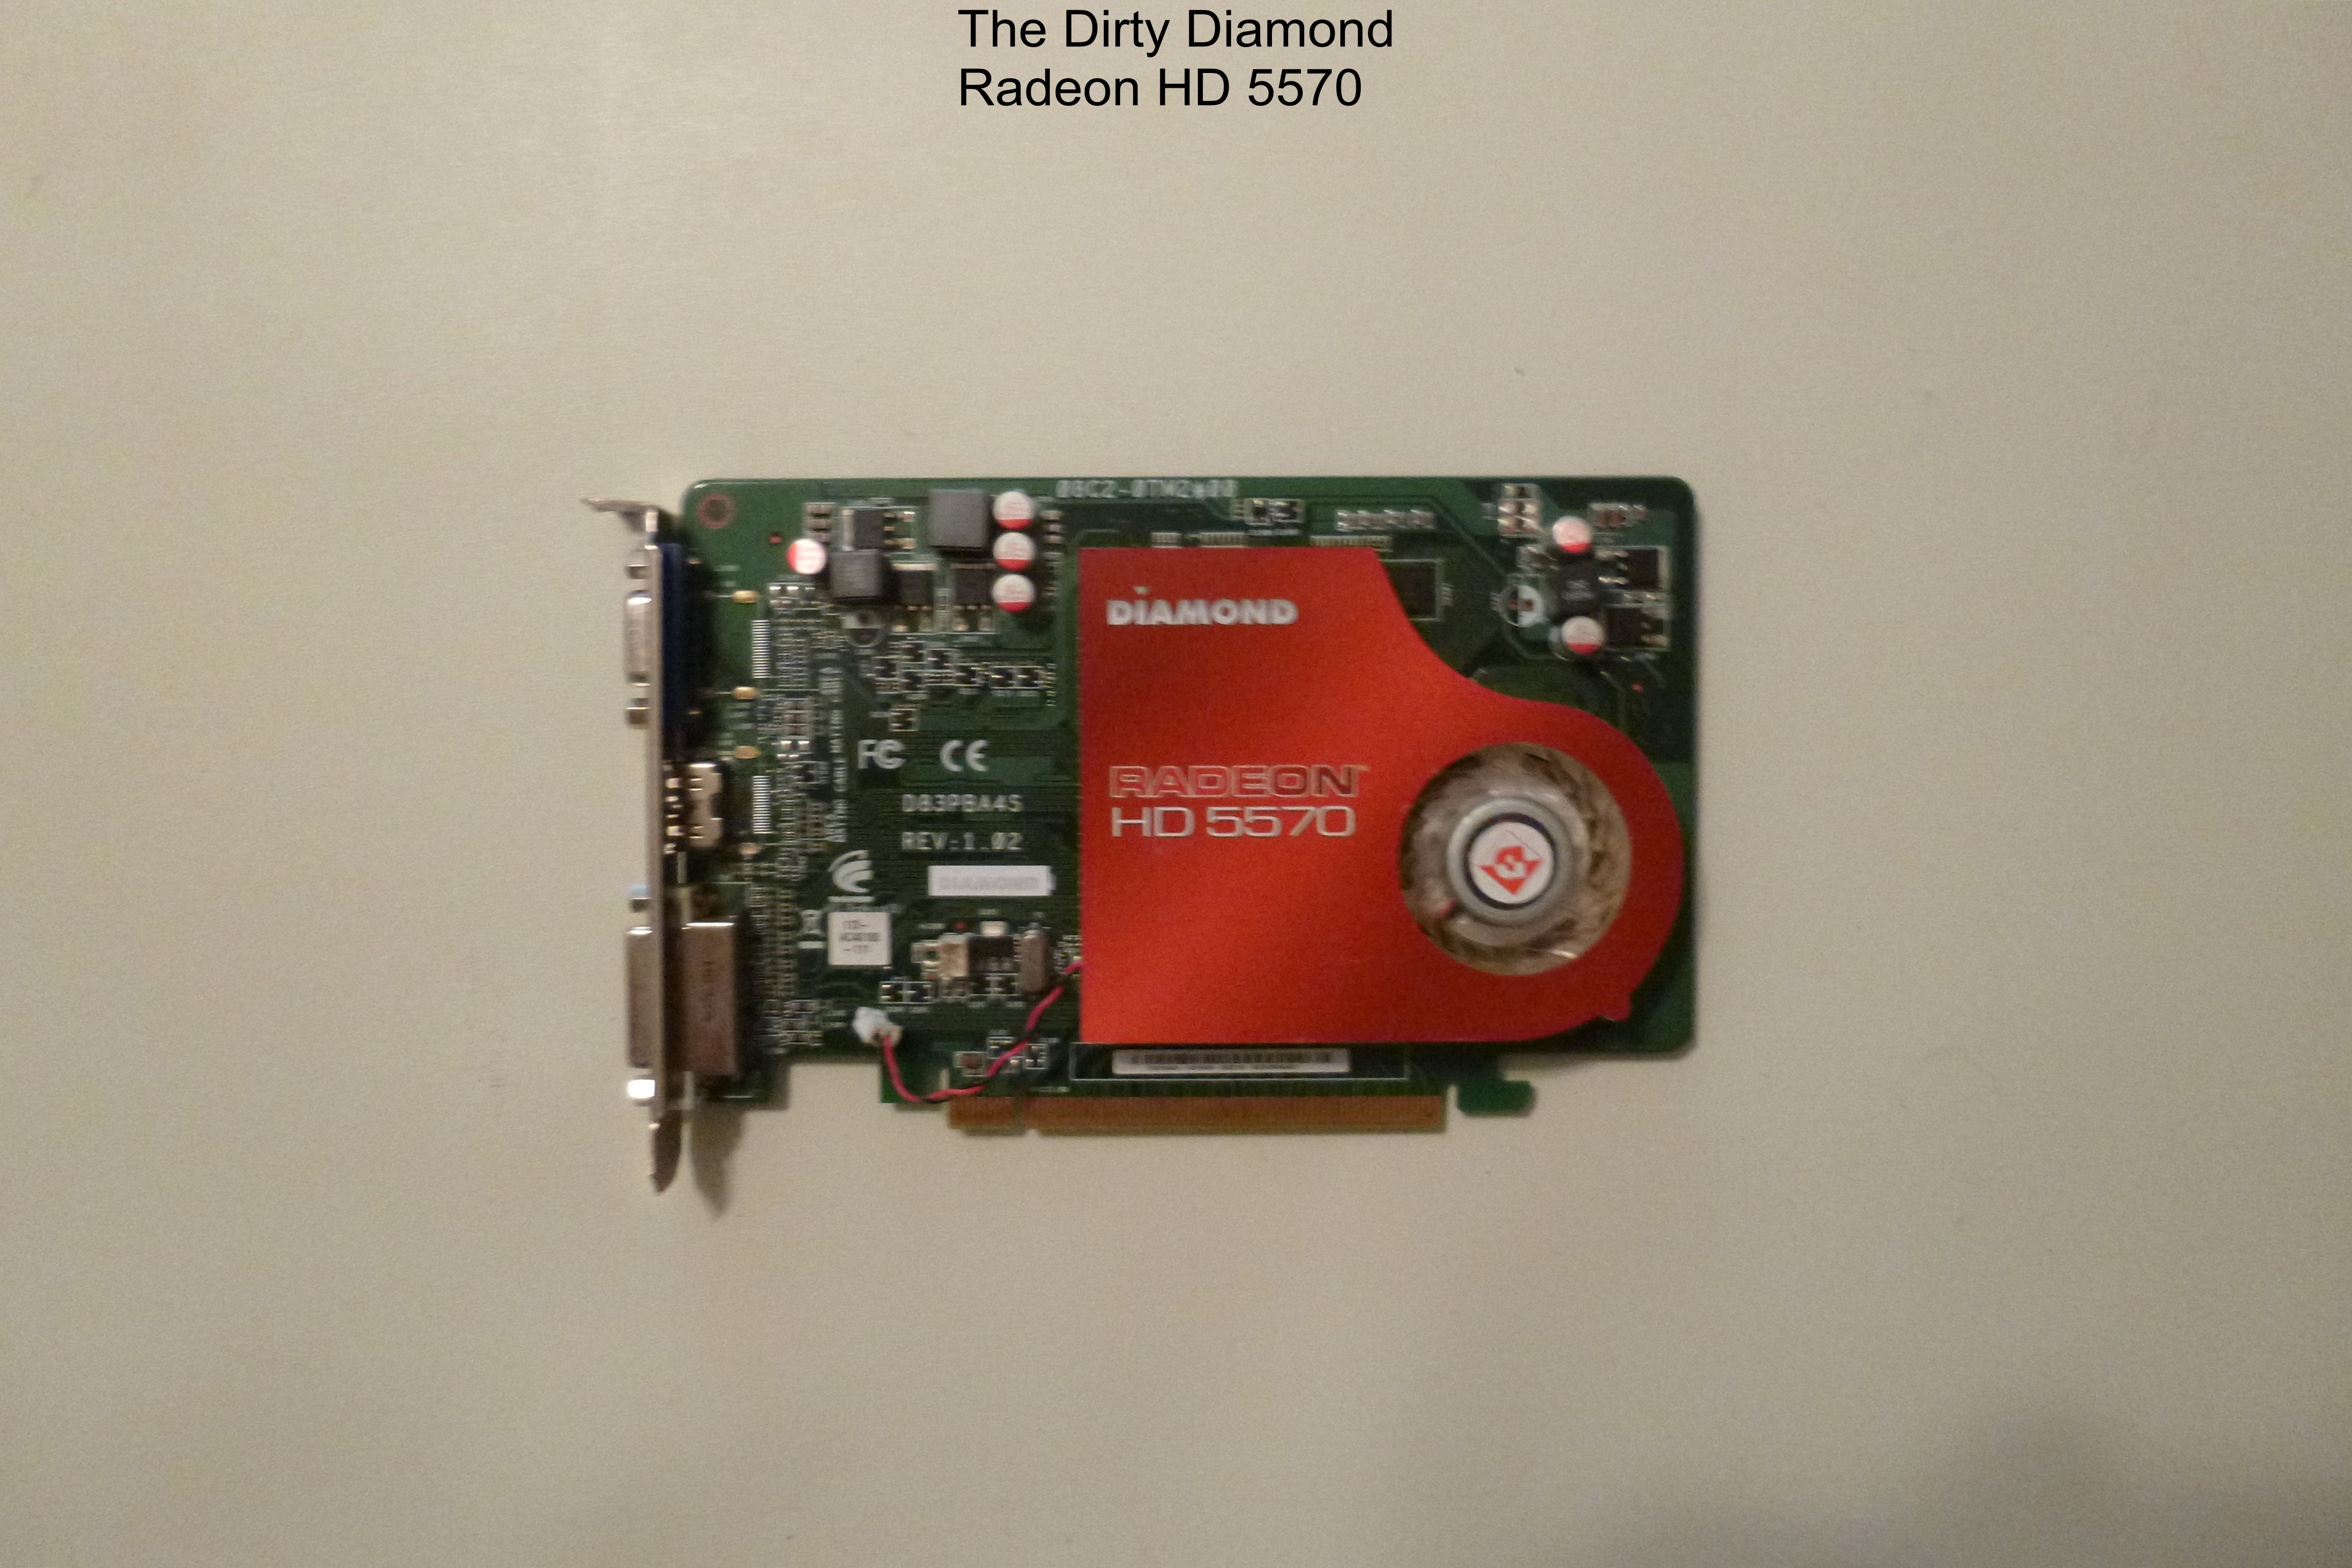 Repairing/Renewing/Upgrading Your Video Card (Example: Radeon HD 5570)